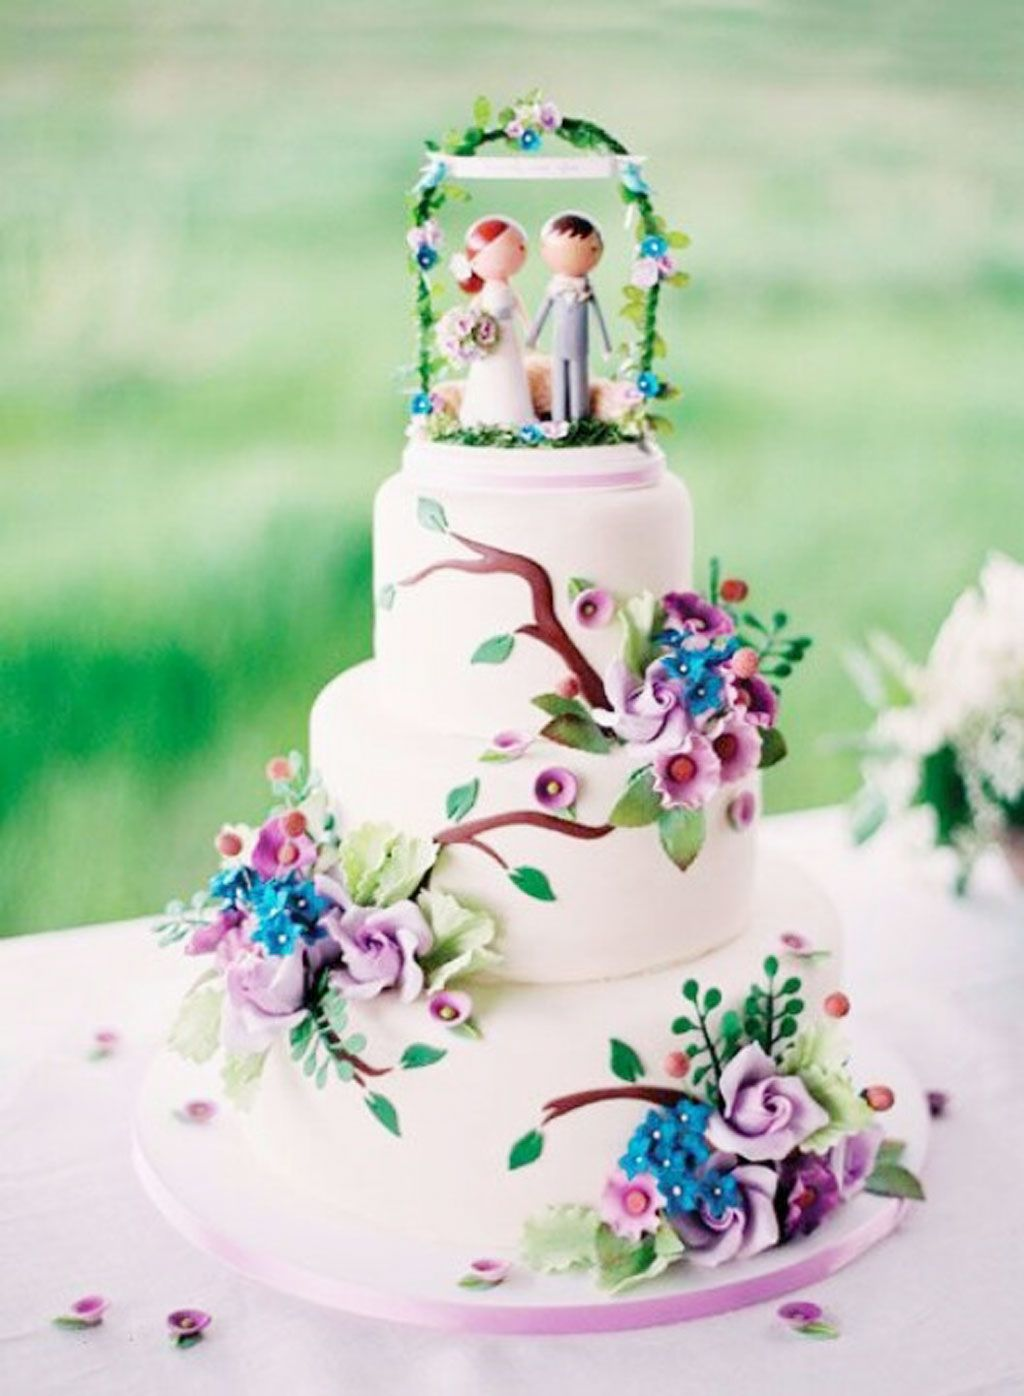 cute wedding cake ideas whimsical wedding cake ideas jpg 1024 215 1396 elisa 13274